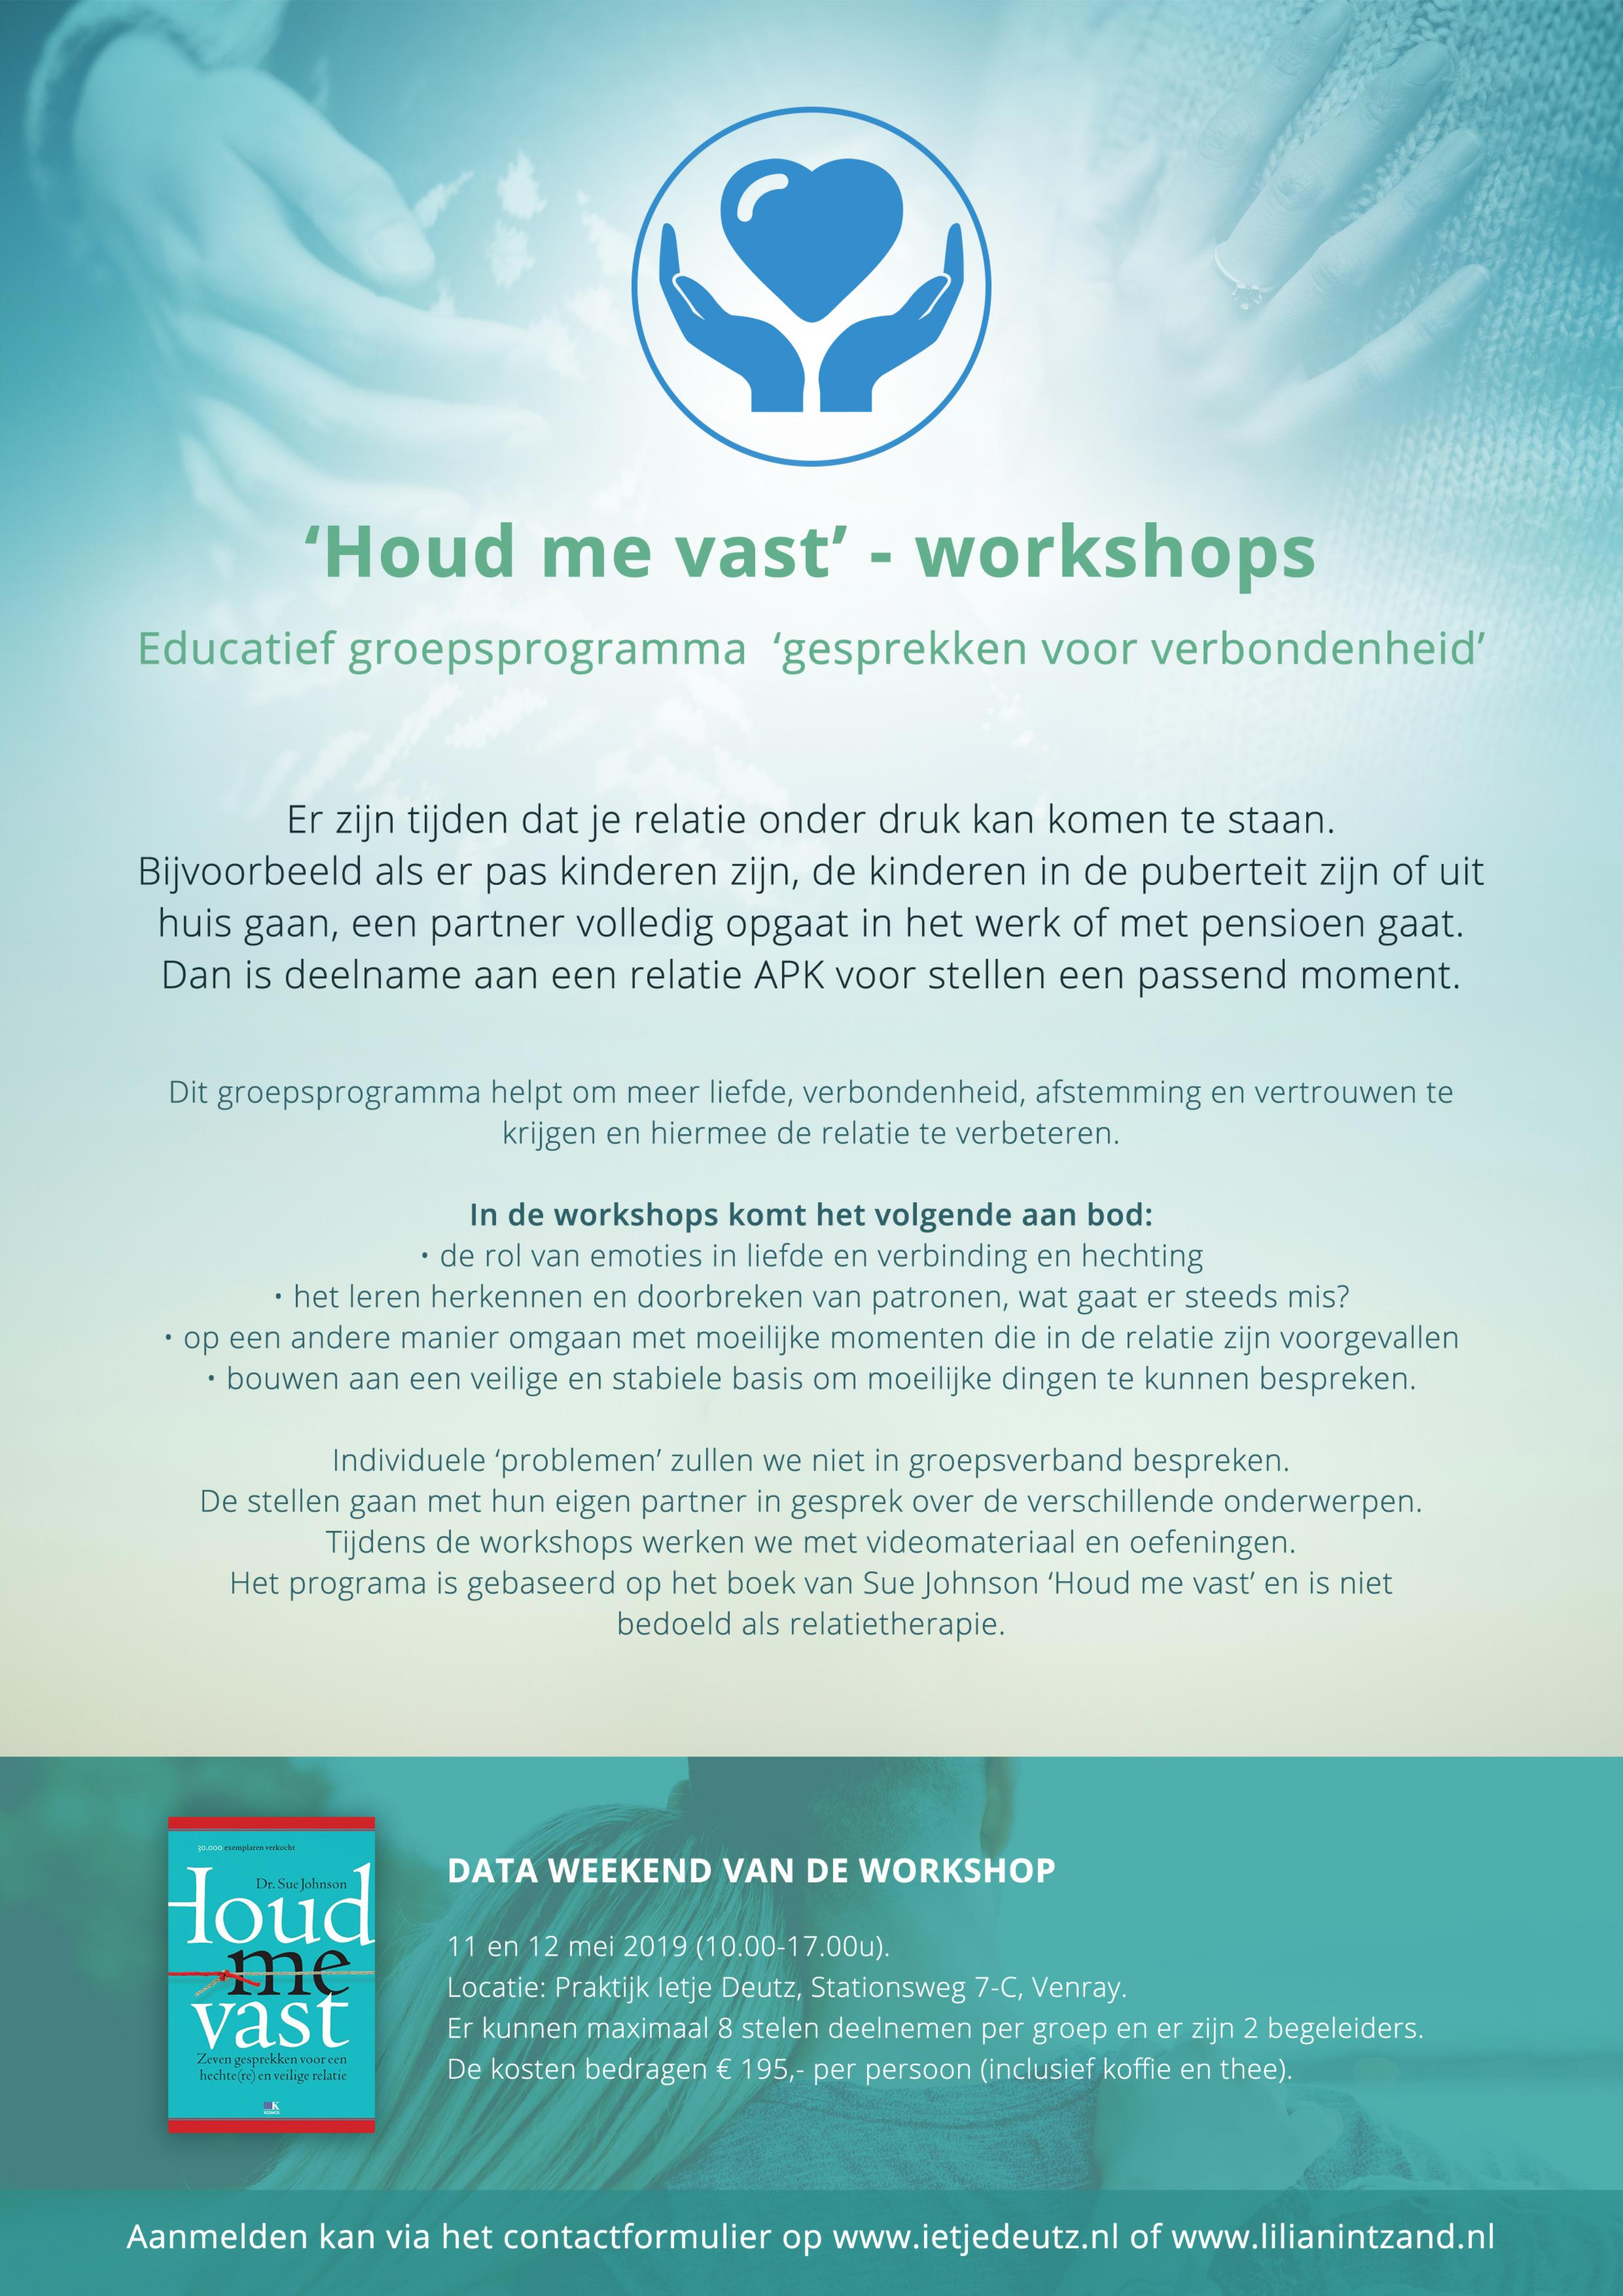 Houd me vast - workshop